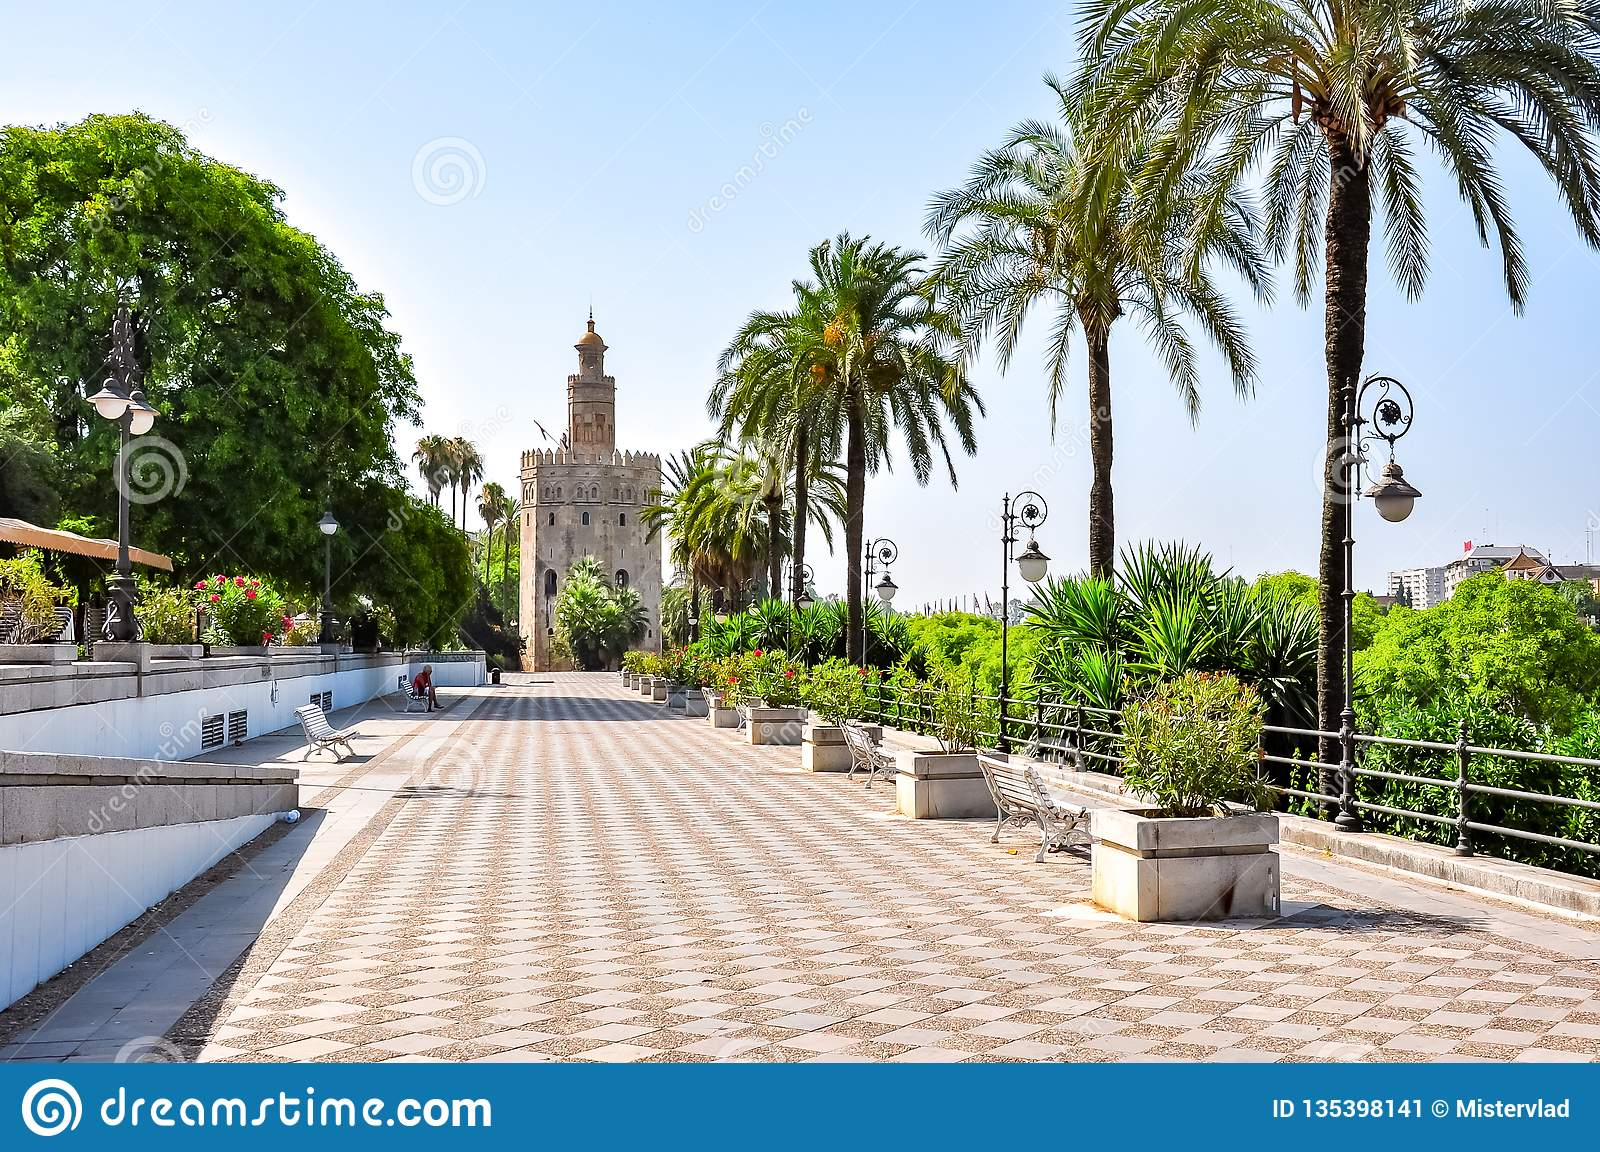 Seville embanmkent and Tower of Gold Torre del Oro, Spain